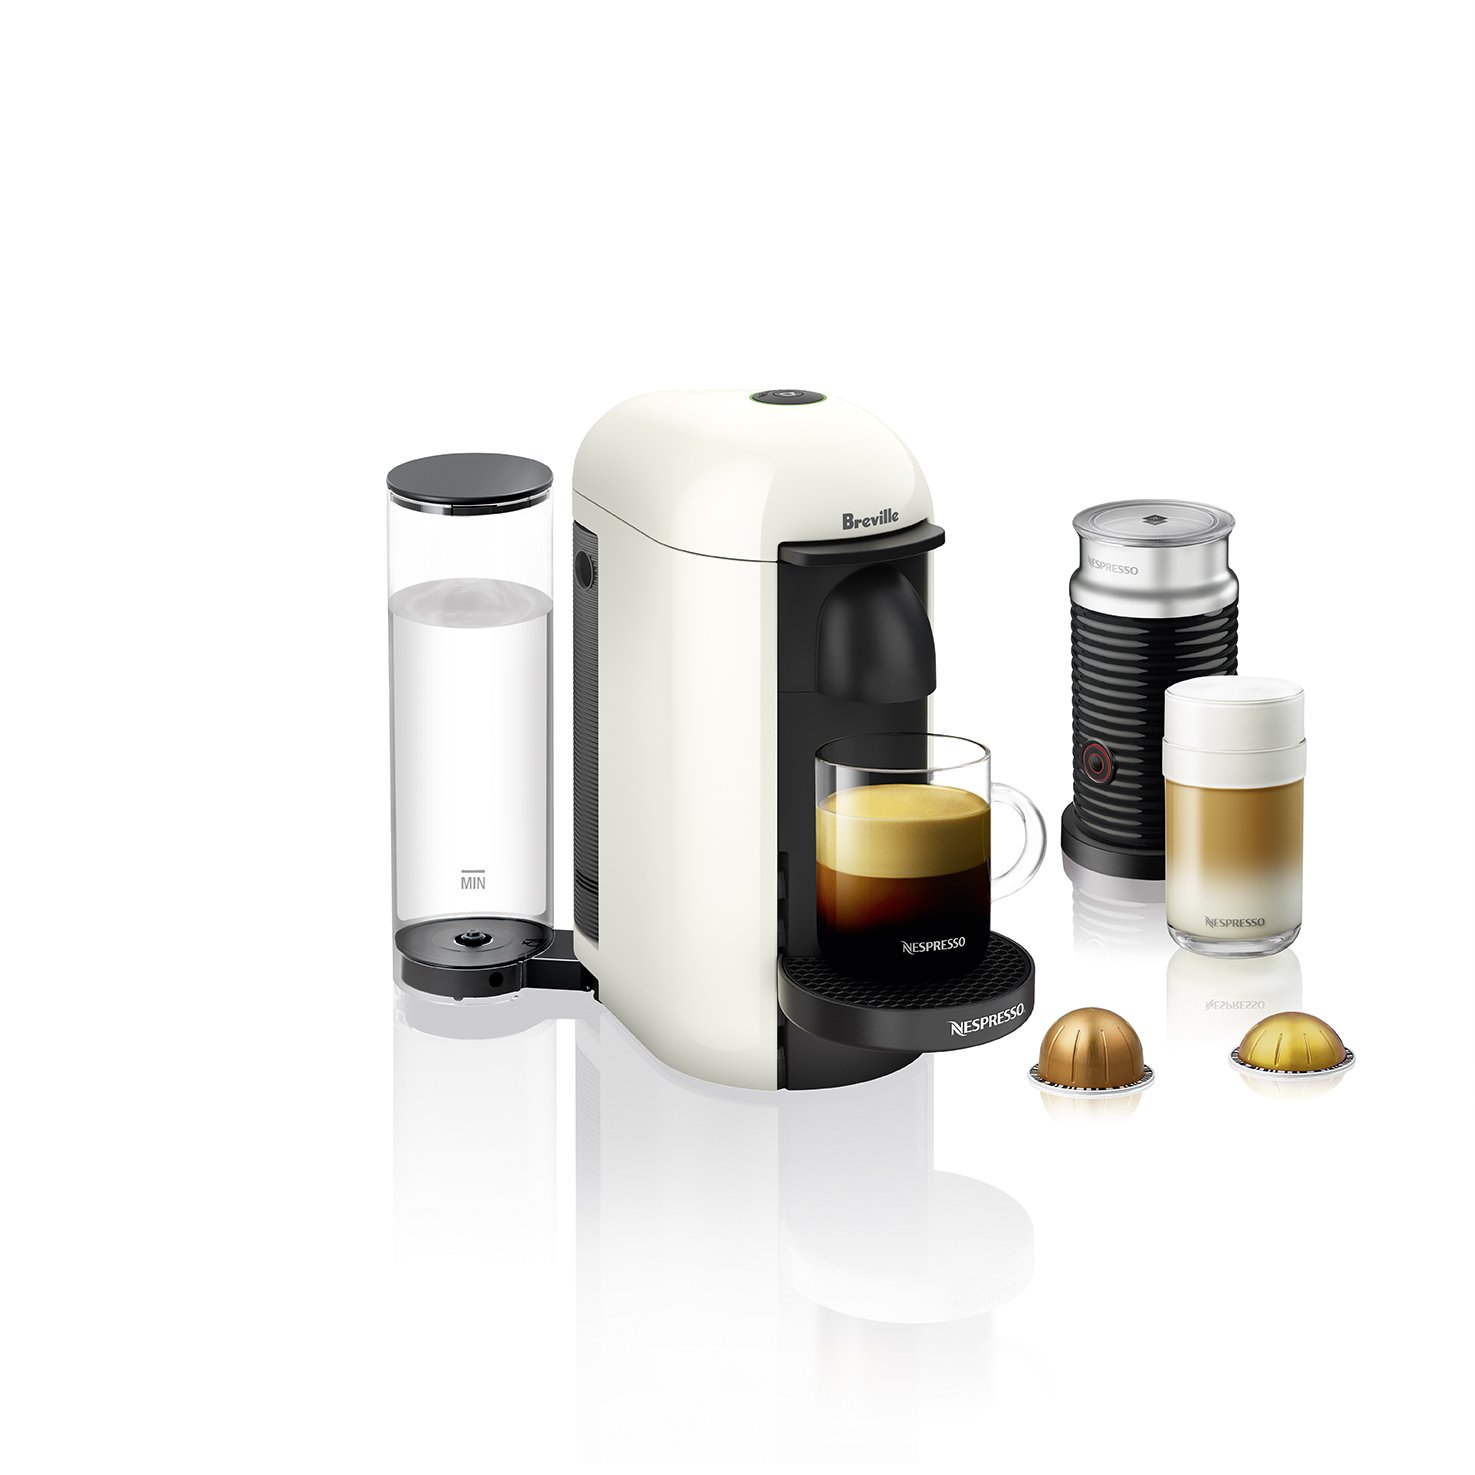 Nespresso VertuoPlus Coffee and Espresso Machine Bundle with Aeroccino Milk Frother by Breville, White by Breville